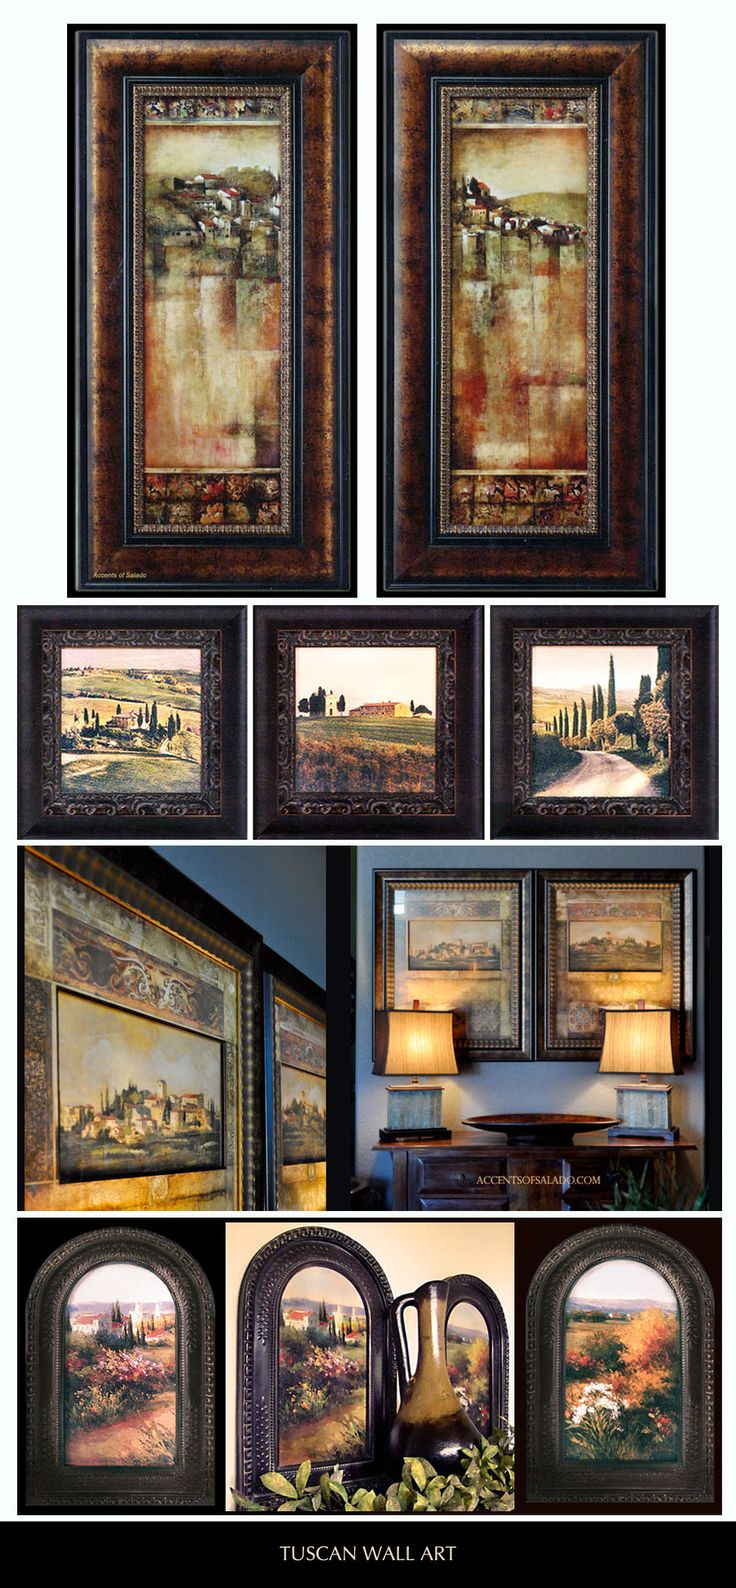 Tuscan Landscapes - Beautifully Framed Tuscan Artwork is our specialty. We've been shipping Tuscan themed wall decor since 1996. Accents of Salado.